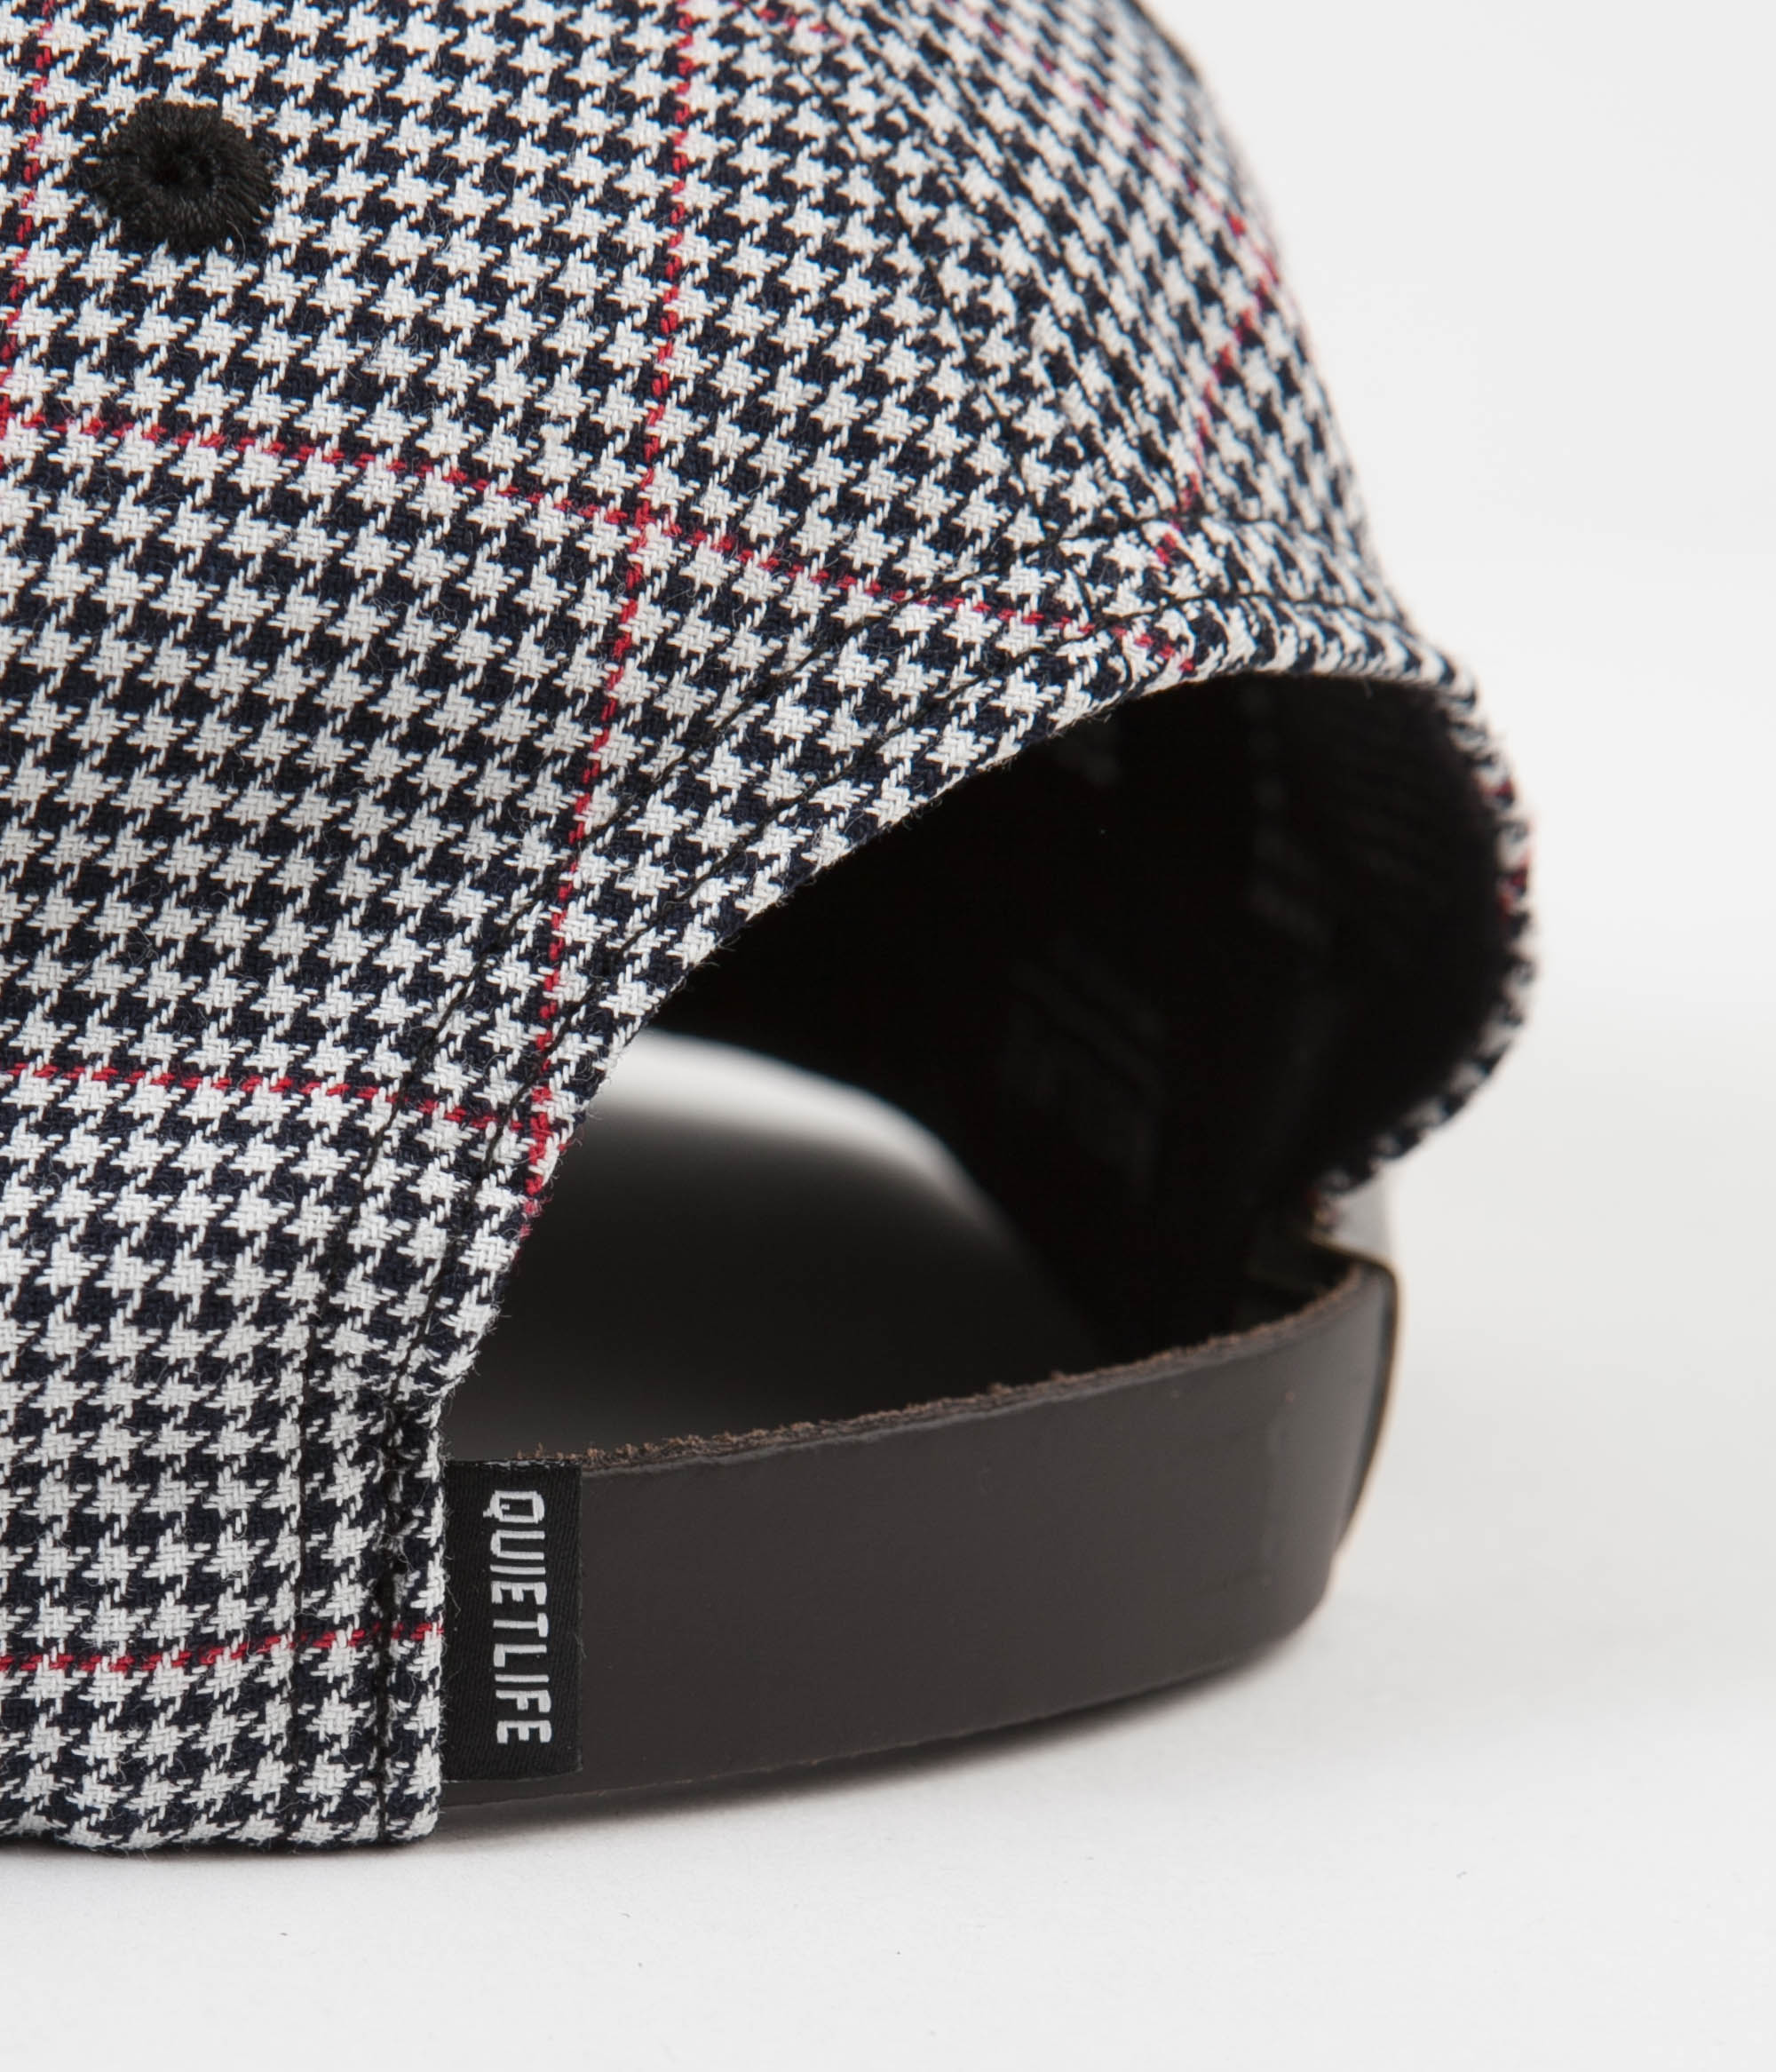 The Quiet Life Houndstooth Polo Cap - Black / White